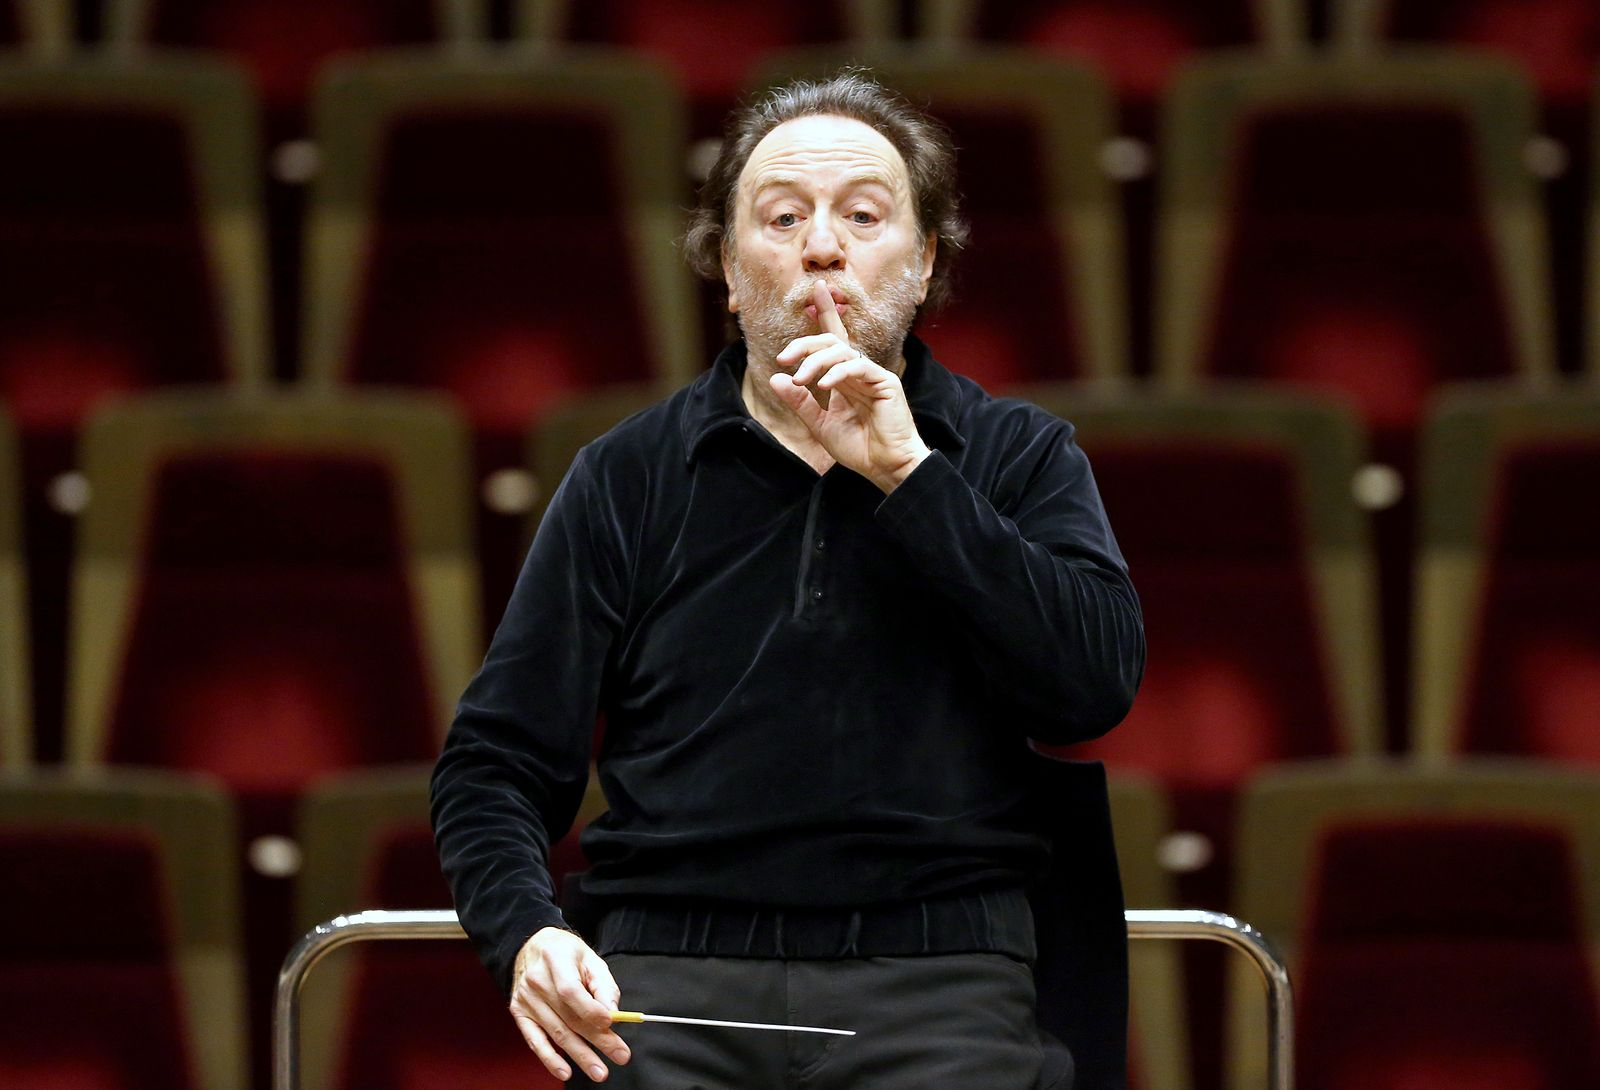 Berliner Philharmoniker/ Riccardo Chailly